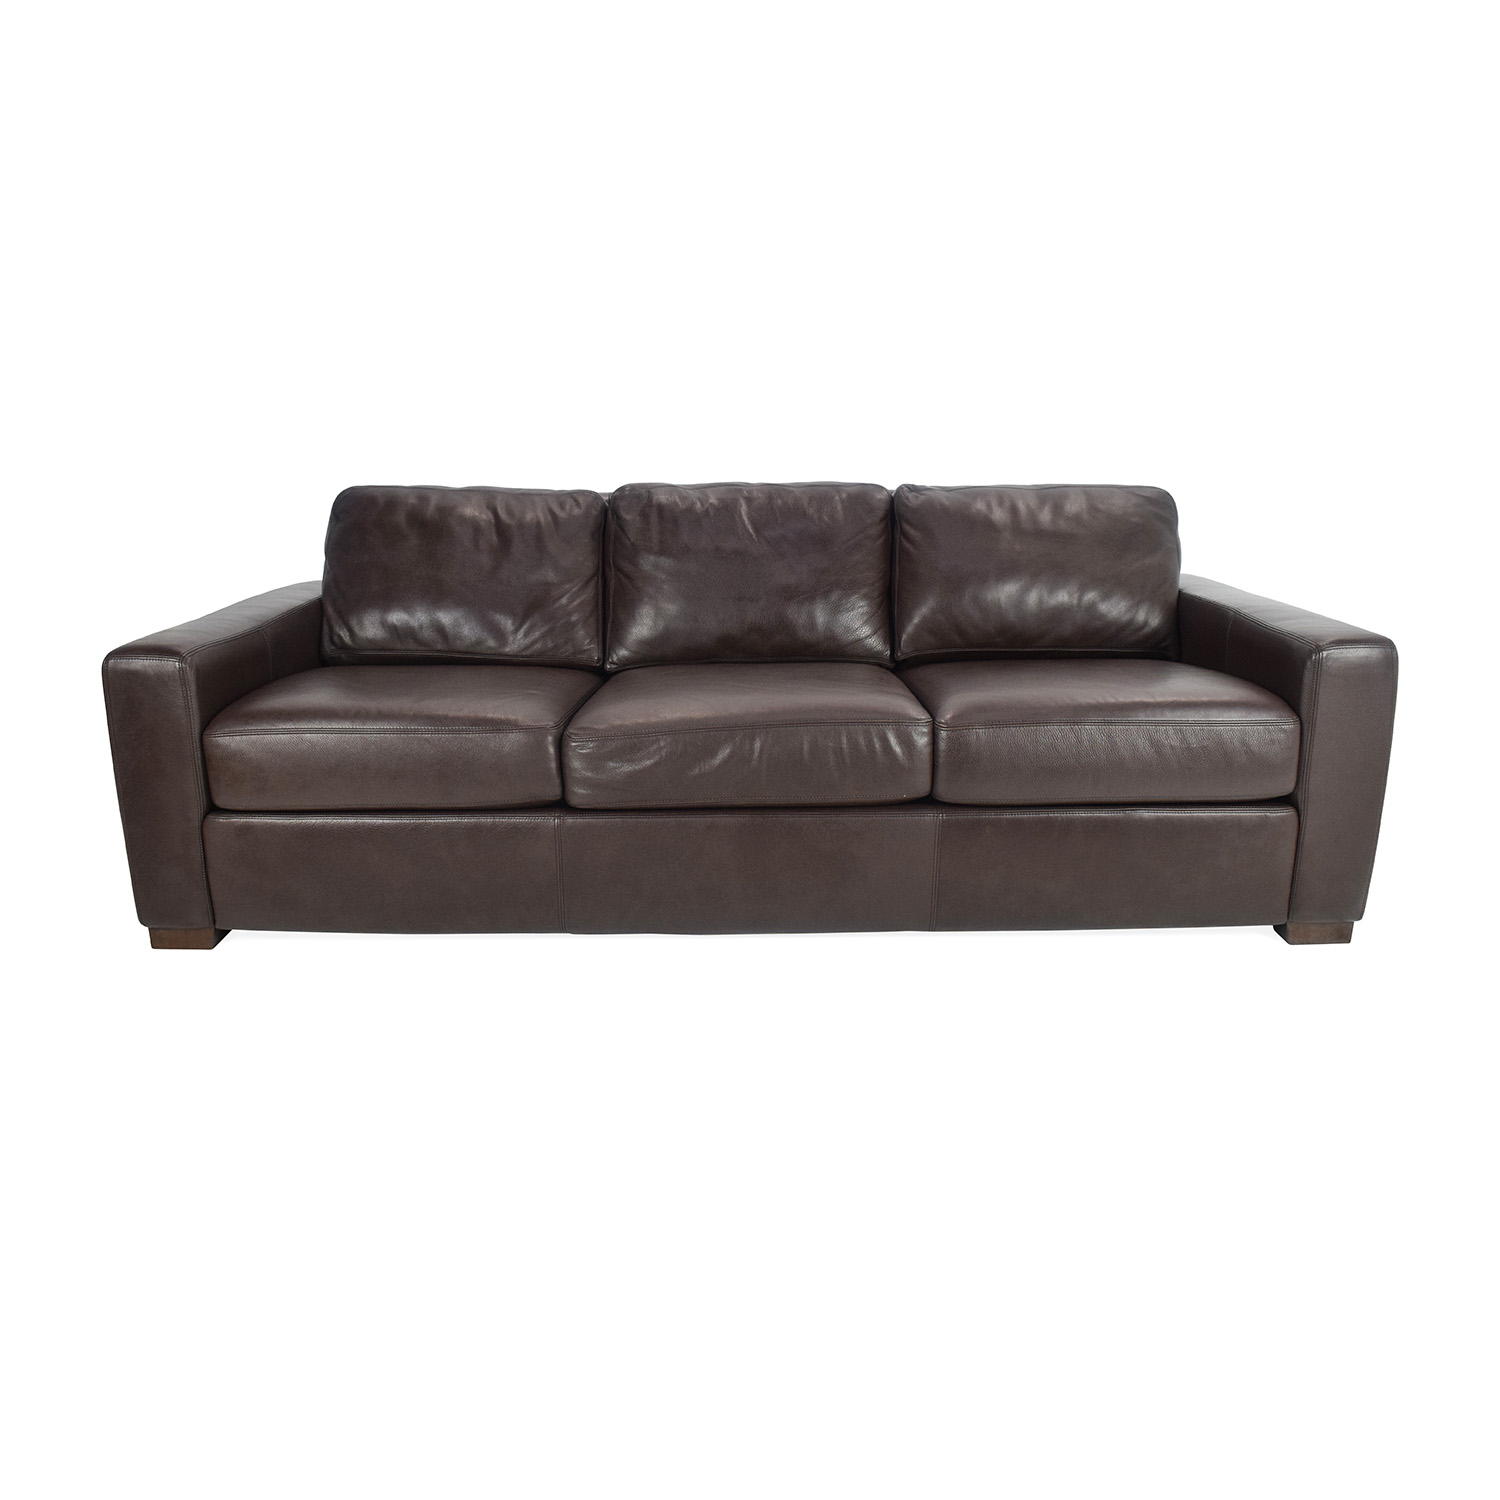 secondhand leather sofas sofa ersatz second hand designer ebay thesofa